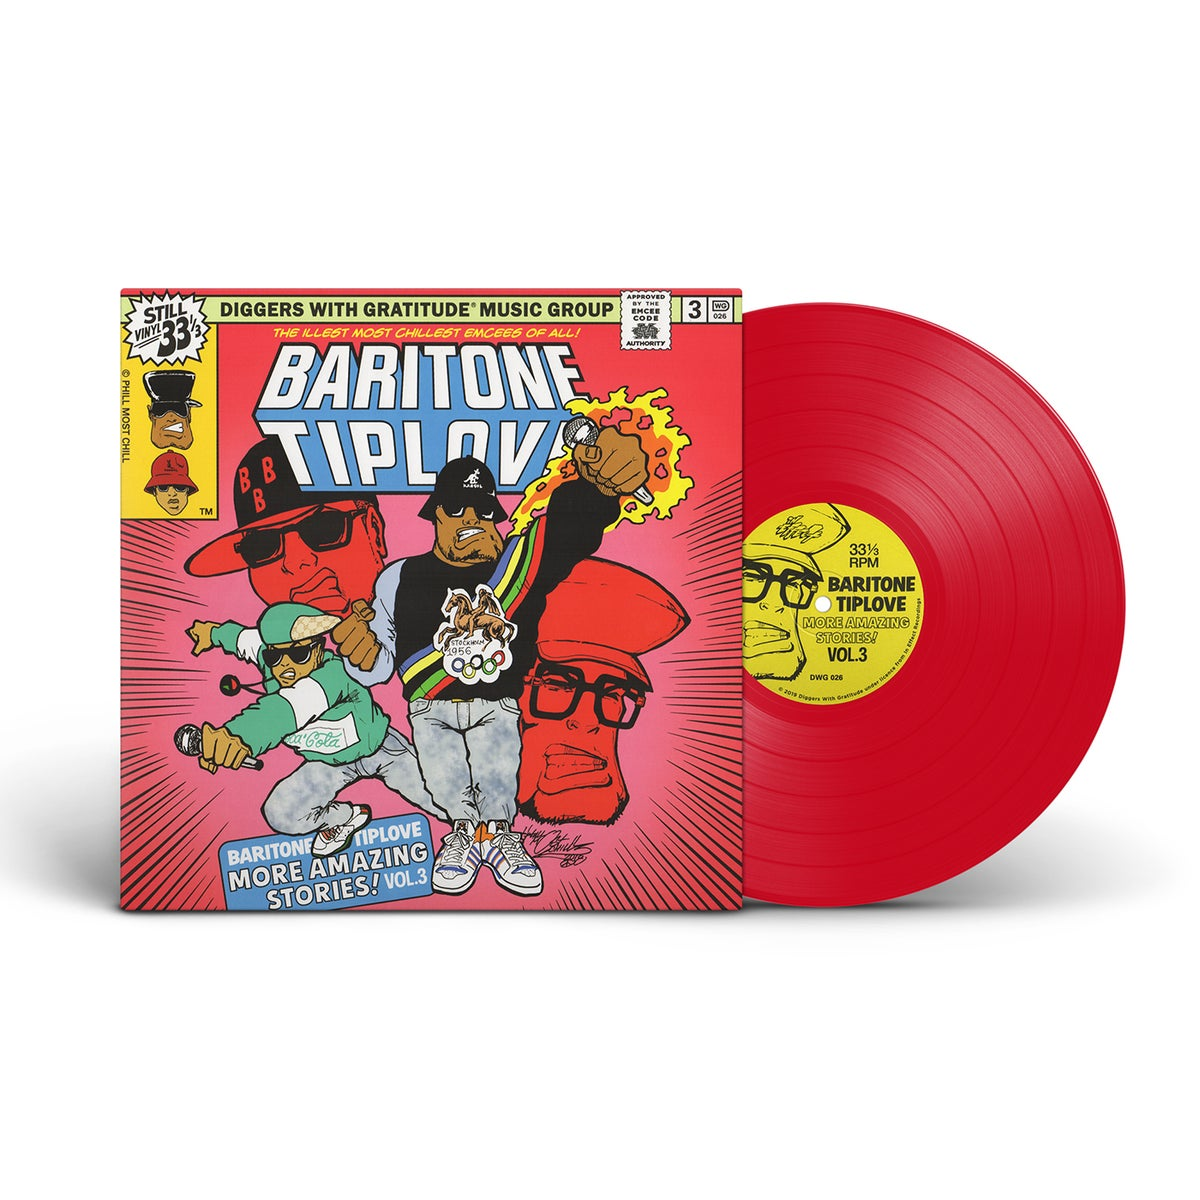 "Image of Baritone Tiplove - More Amazing Stories! Vol. 3 - DWG exclusive 180g red PROMO vinyl and 7"" BUNDLE"